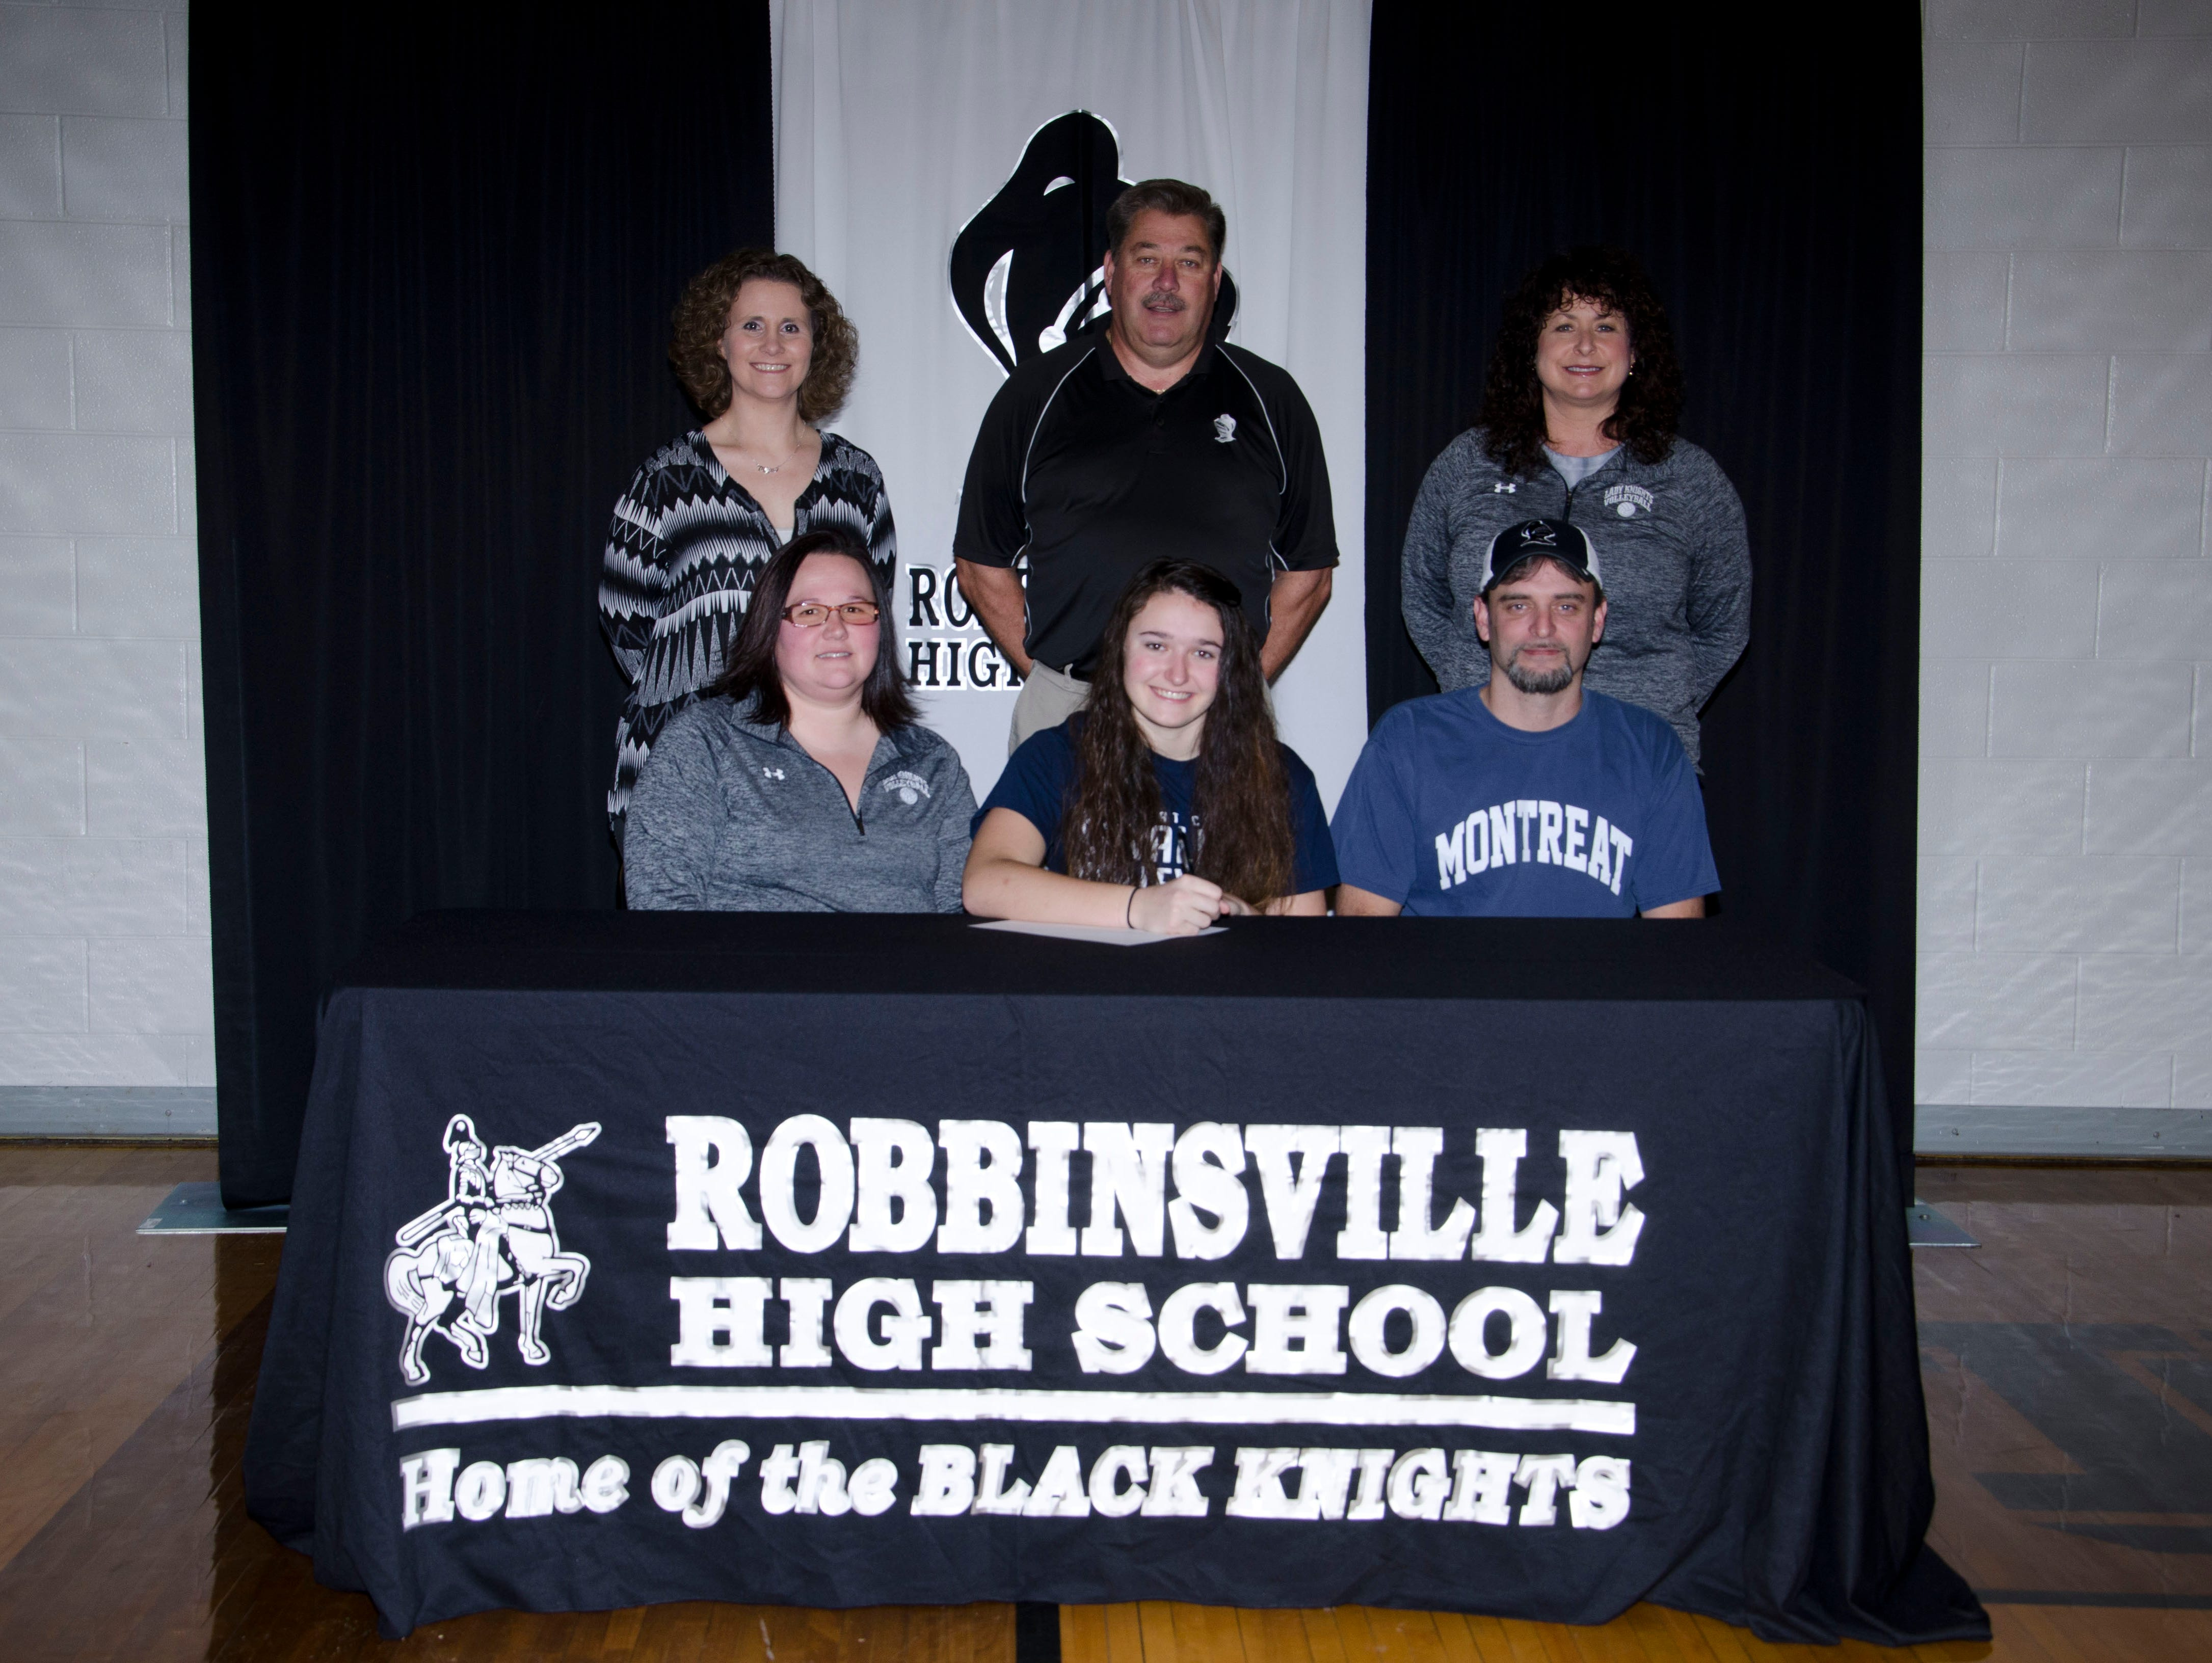 Recent Robbinsville graduate Daylee Brooms has signed to play college volleyball for Montreat.